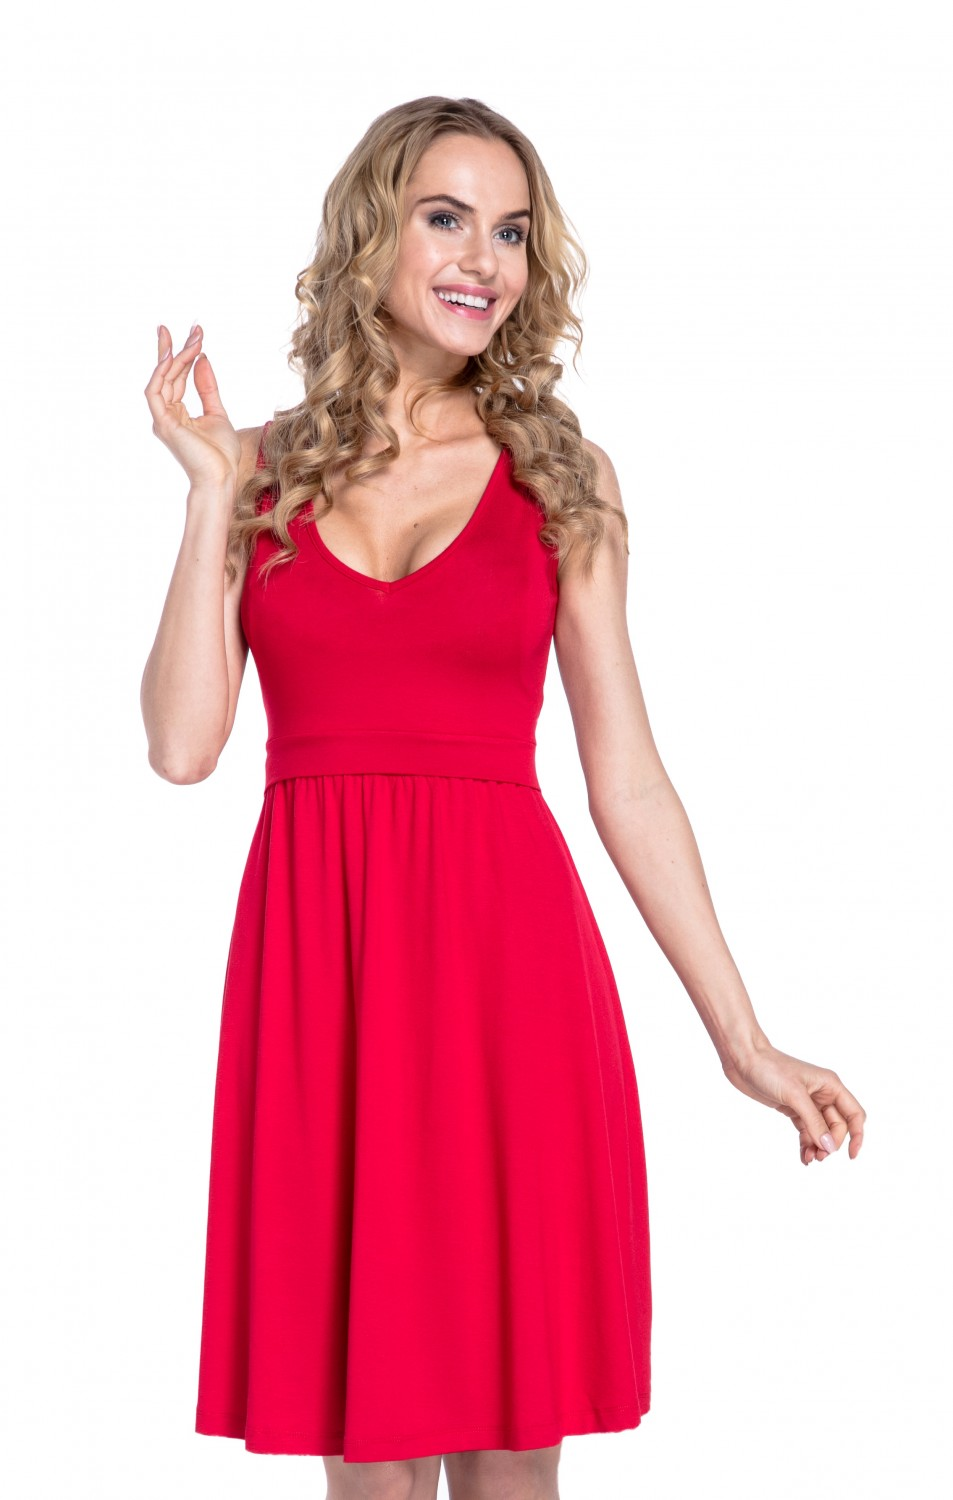 Happy Mama Womens Maternity Nursing Layered Skater Dress Sleeveless. 685p  Red S. About this product. Picture 1 of 8  Picture 2 of 8 ... 3657818ea4